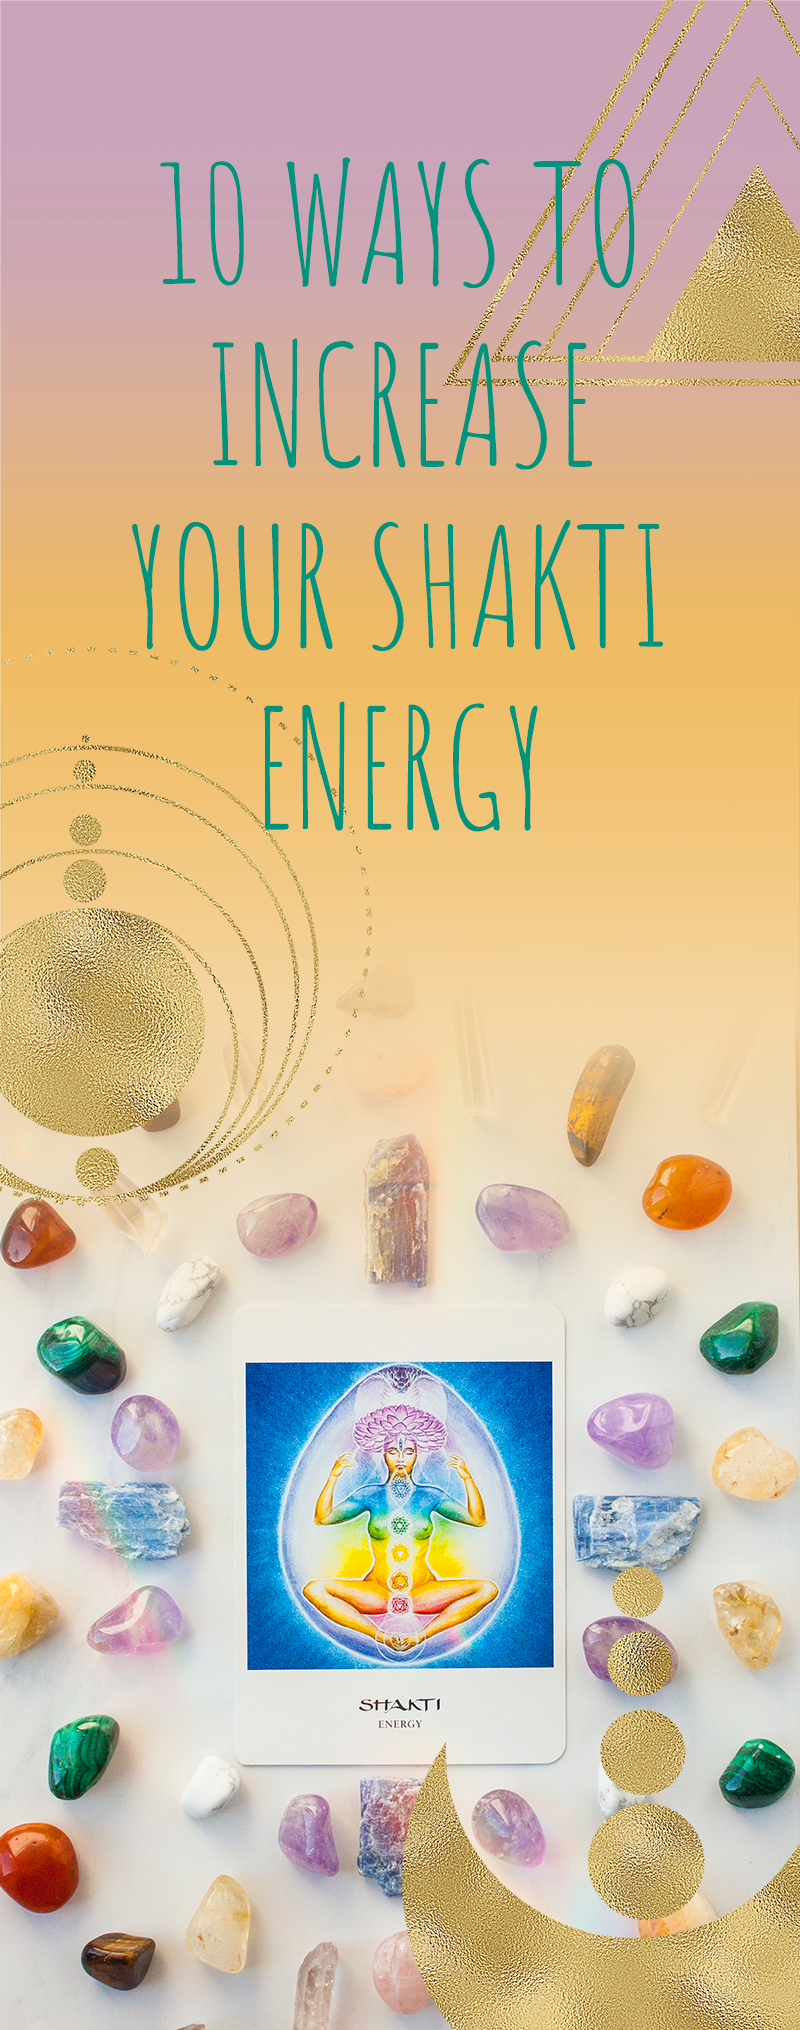 Pic2-how-to-increase-your-shakti-energy